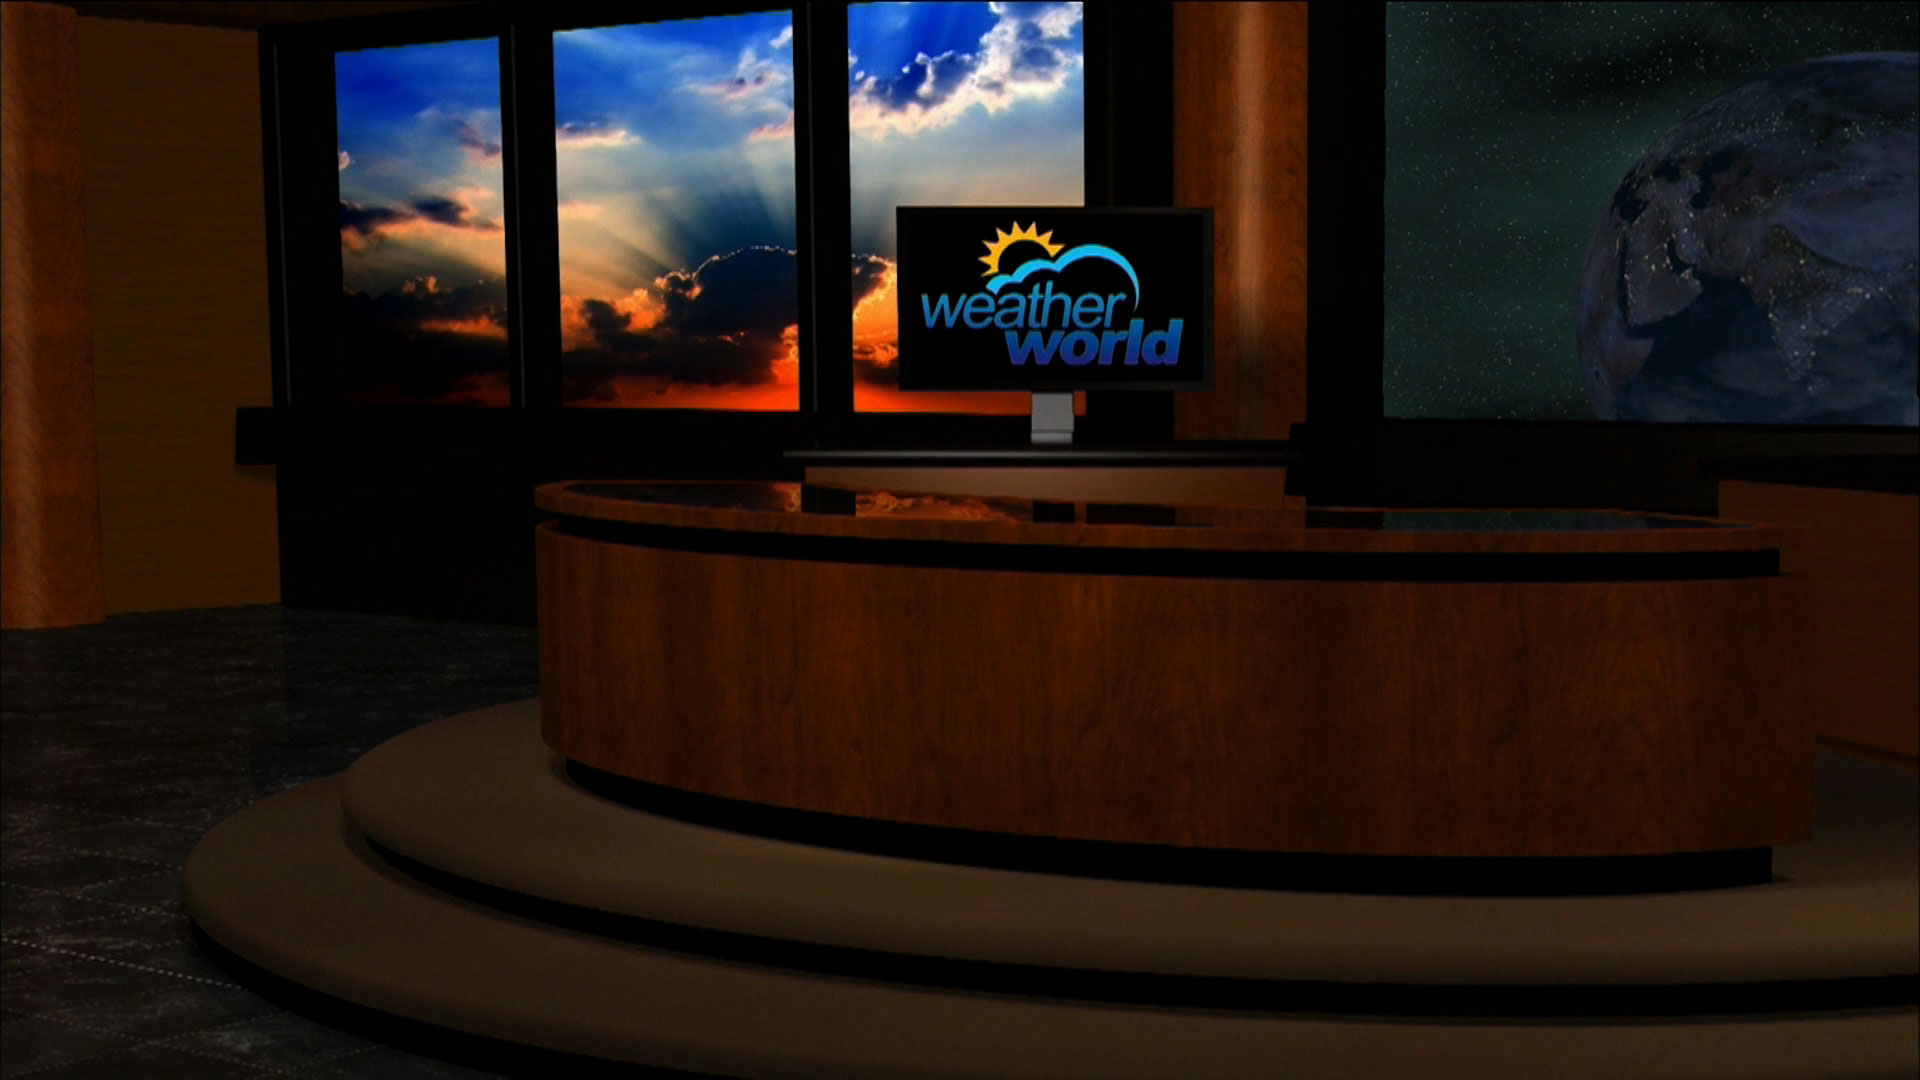 Weather World studio